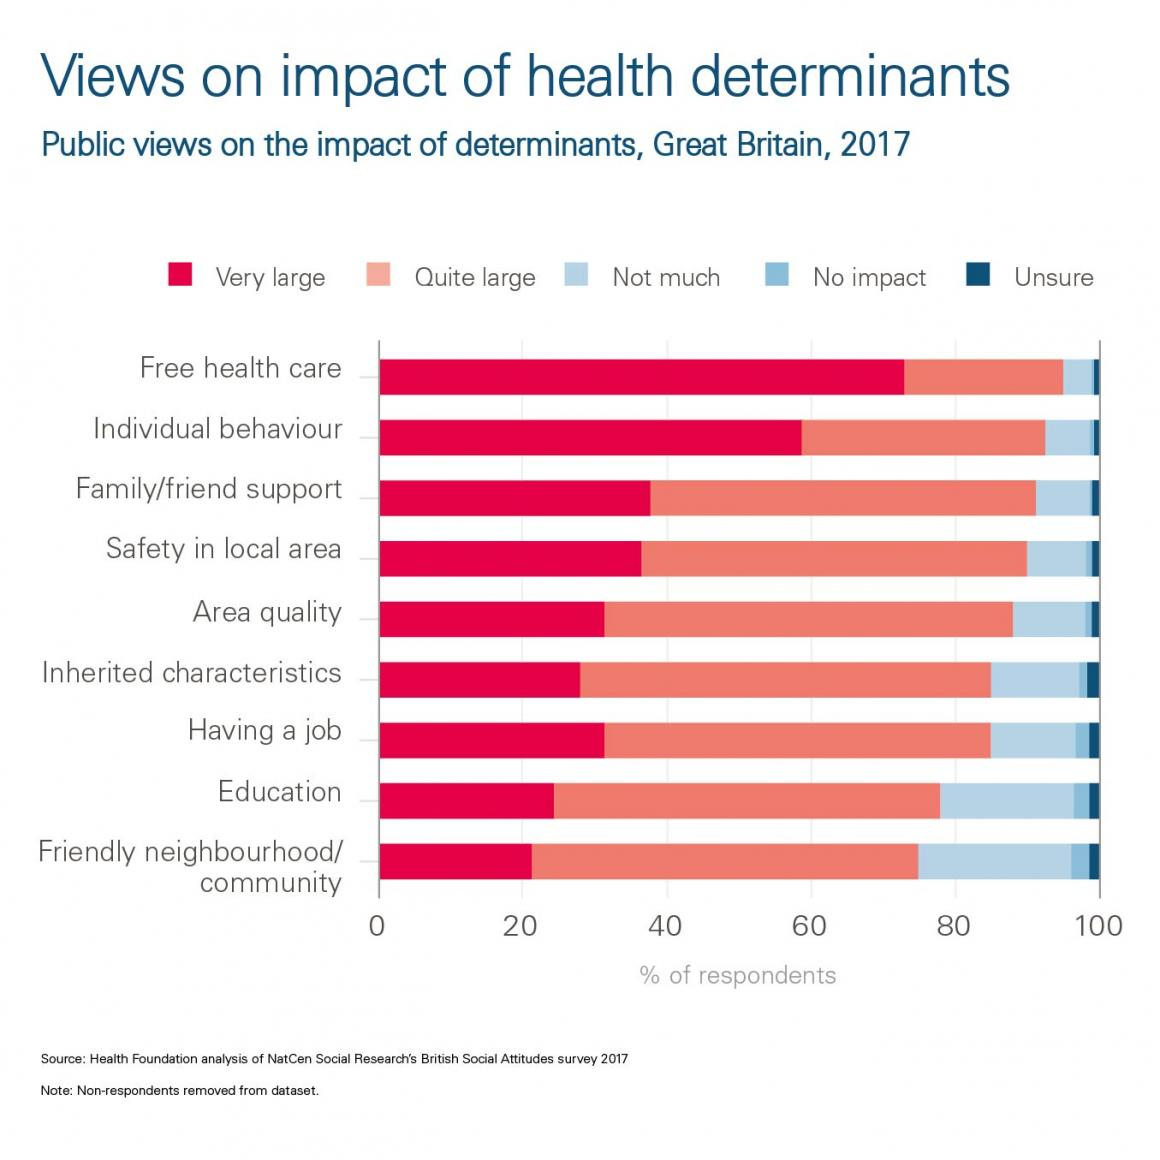 Chart - Views on impact of health determinants